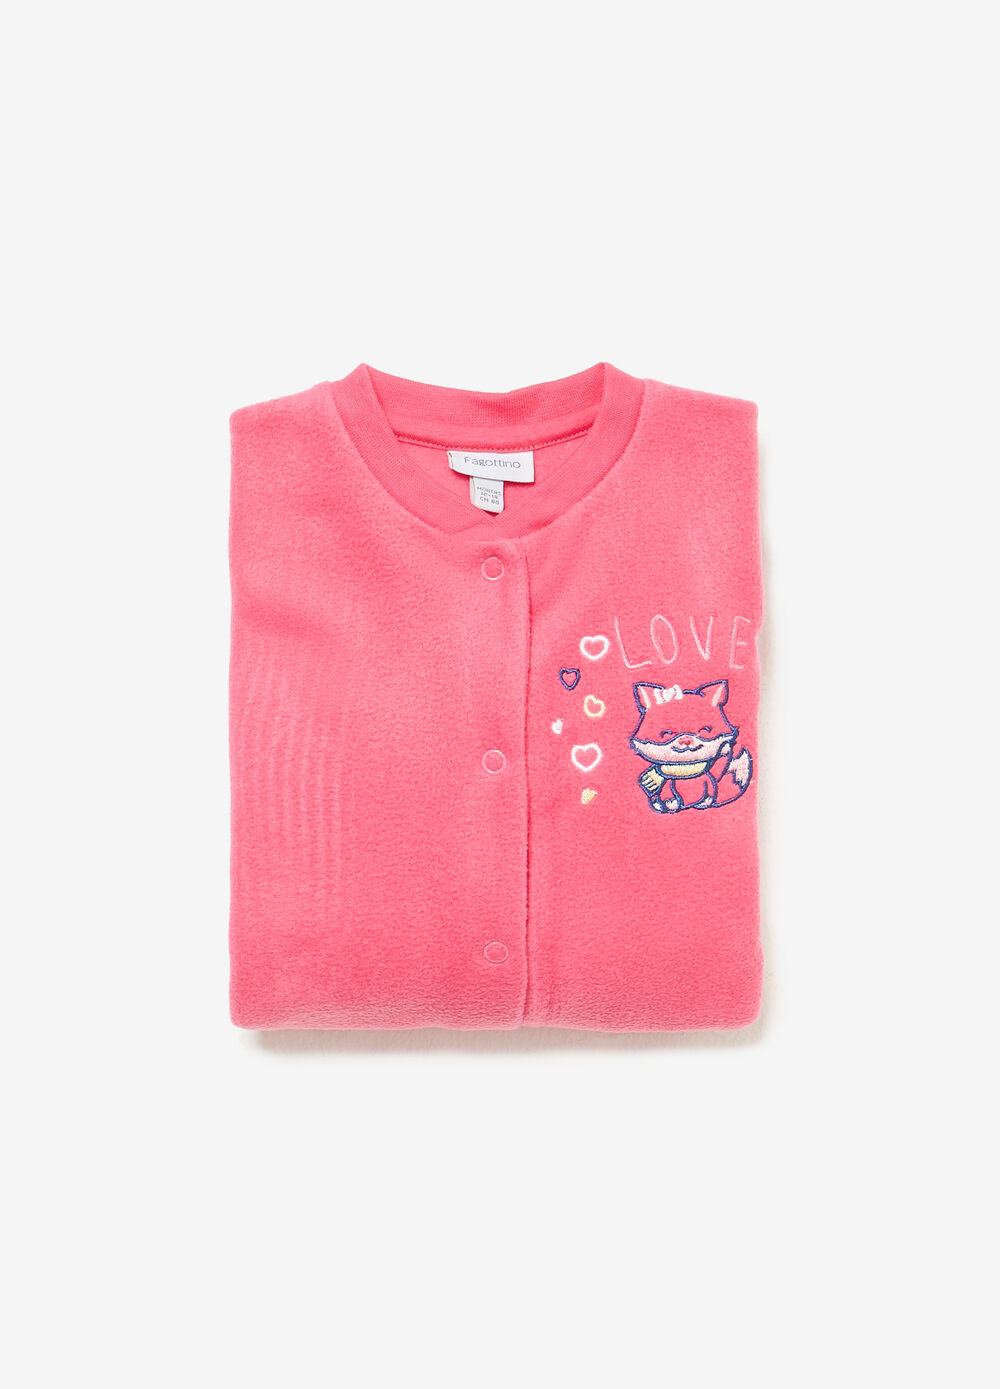 Romper suit with kitten embroidery